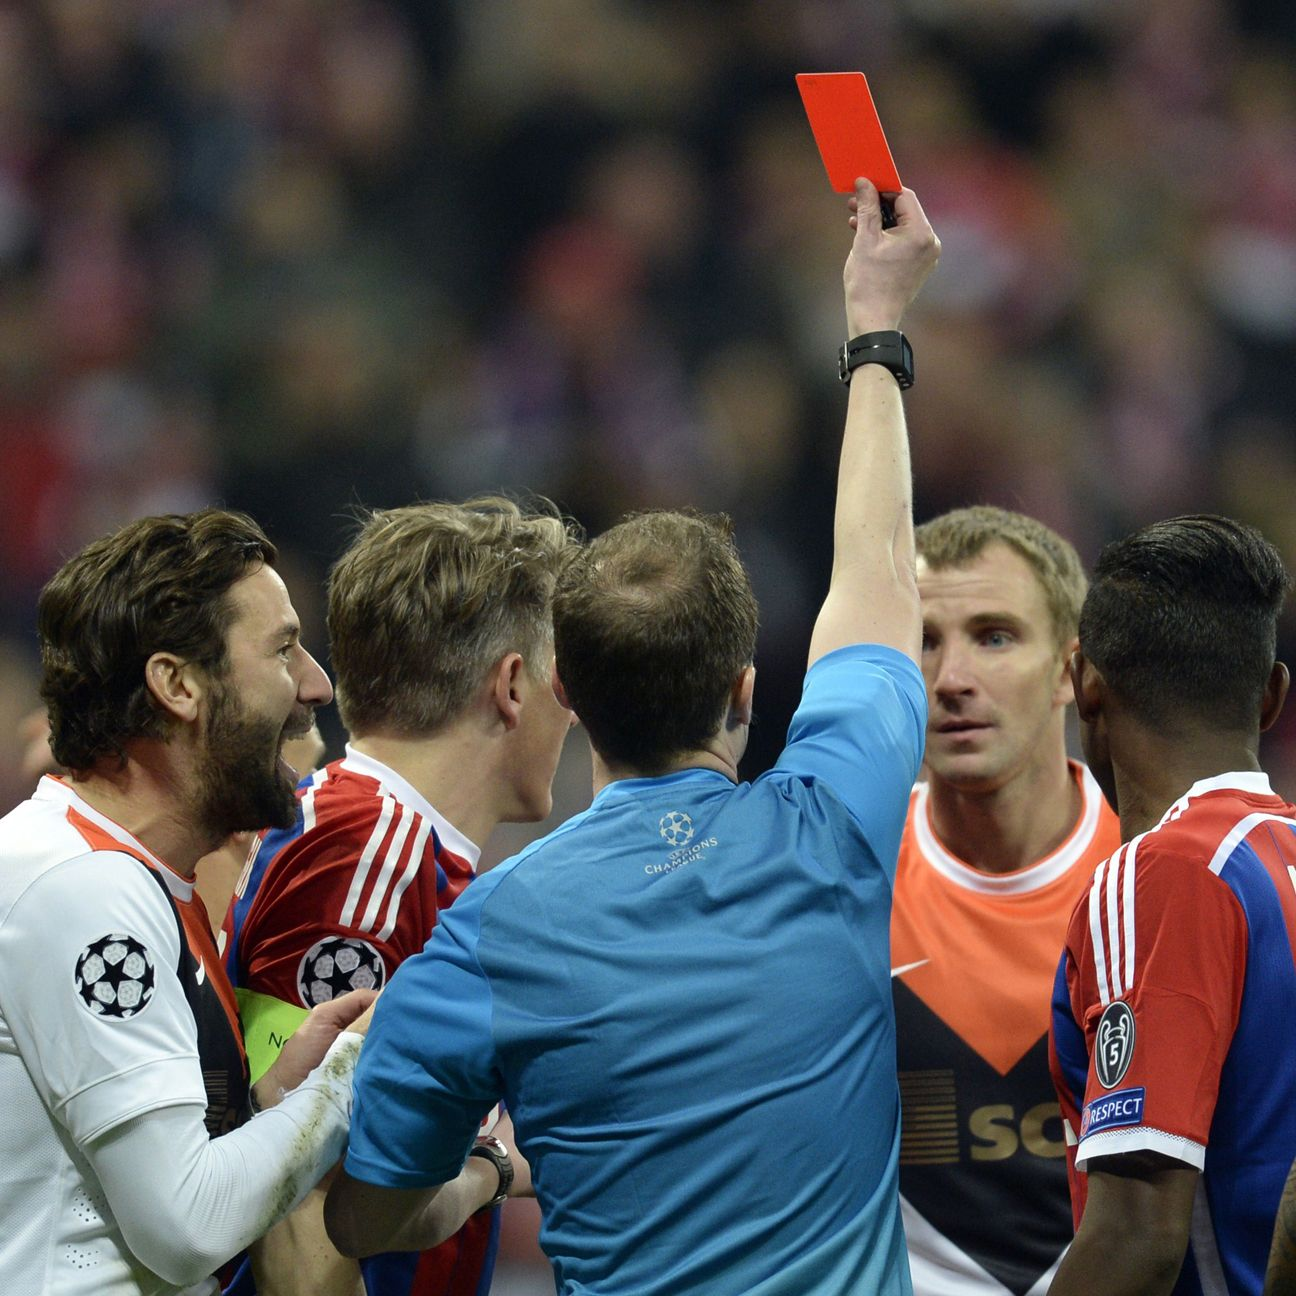 Bayern's job versus Shakhtar Donetsk was made much easier thanks to Olexandr Kucher's third minute red card.